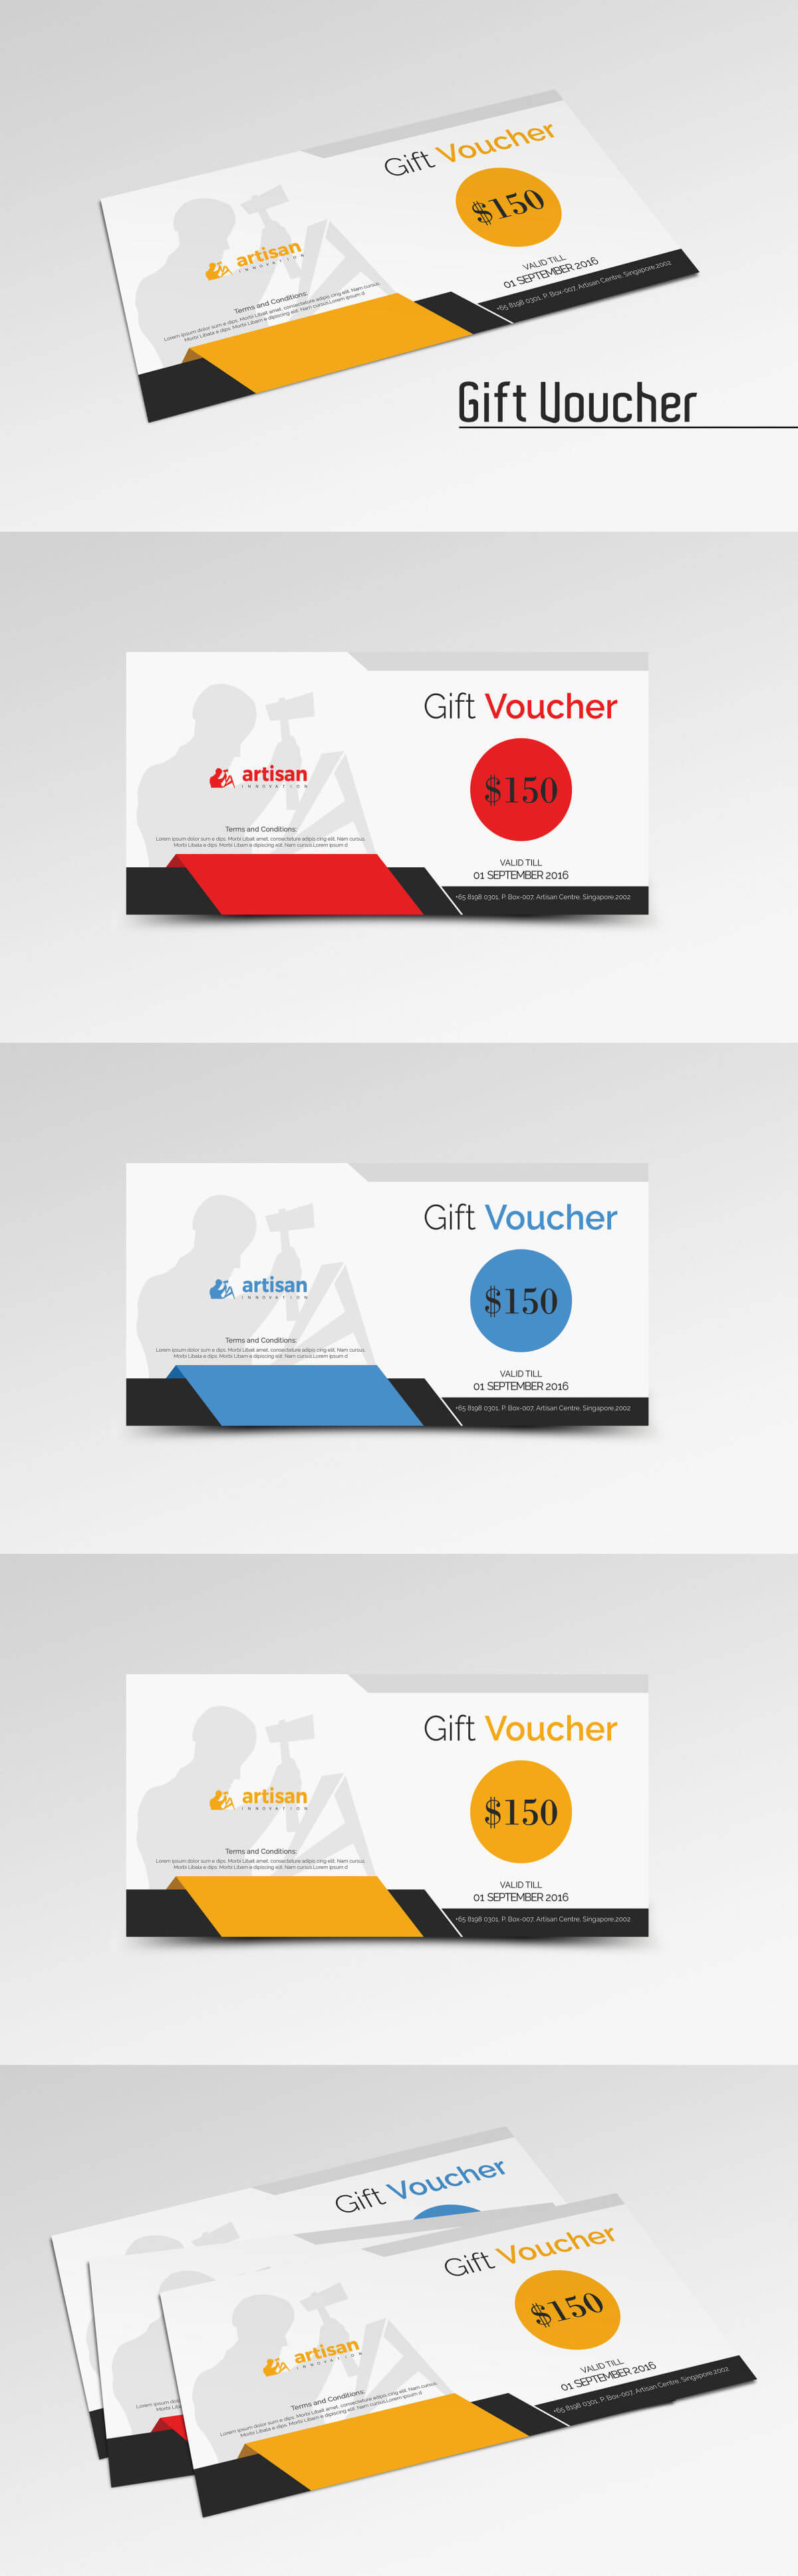 Gift Voucher Template Ai, Eps, Psd | Gift Voucher Templates For Gift Card Template Illustrator